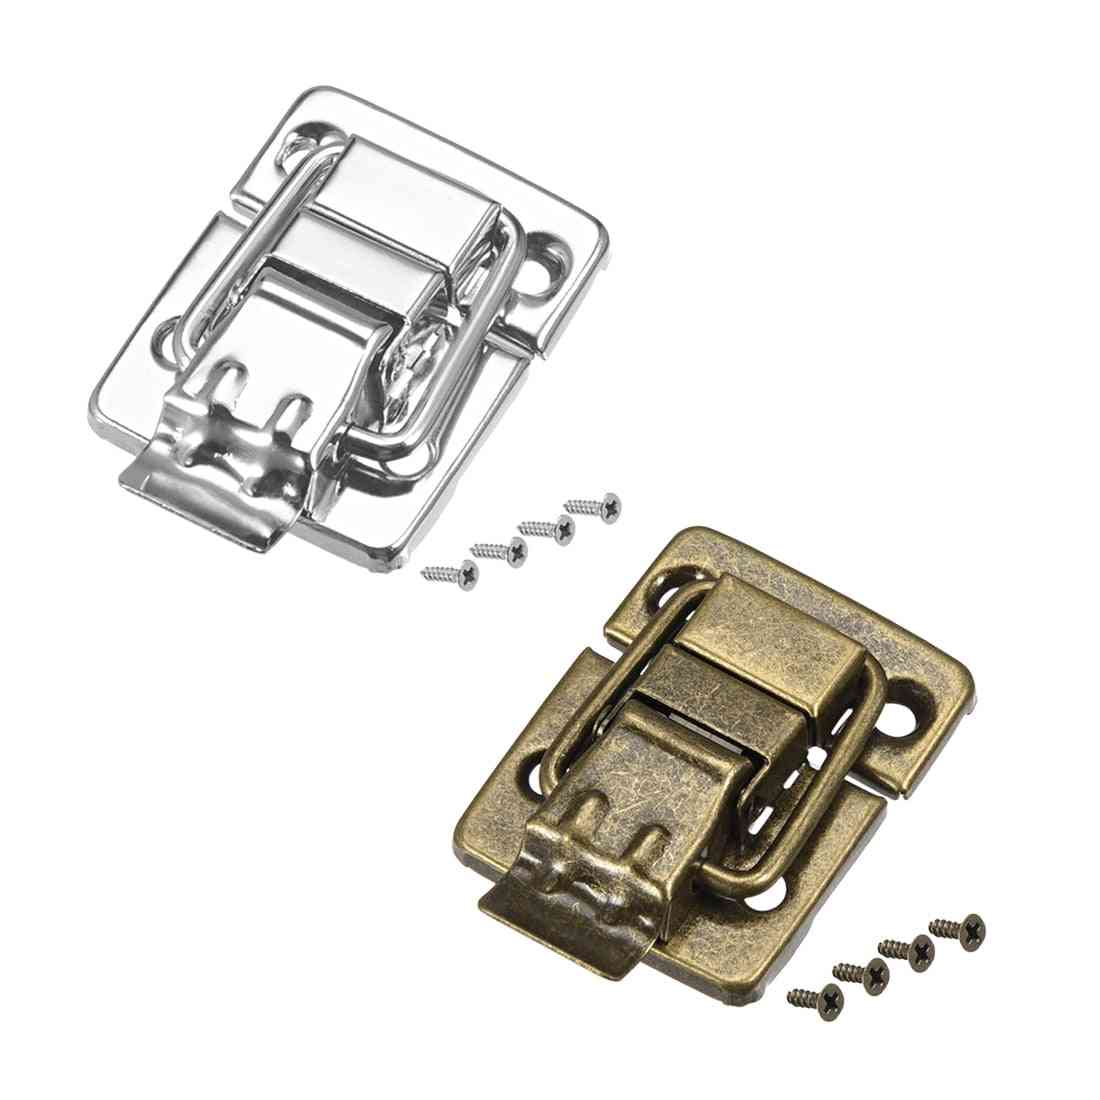 Small Size Suitcase Hasp Metal Catch Latch With Screws Durable